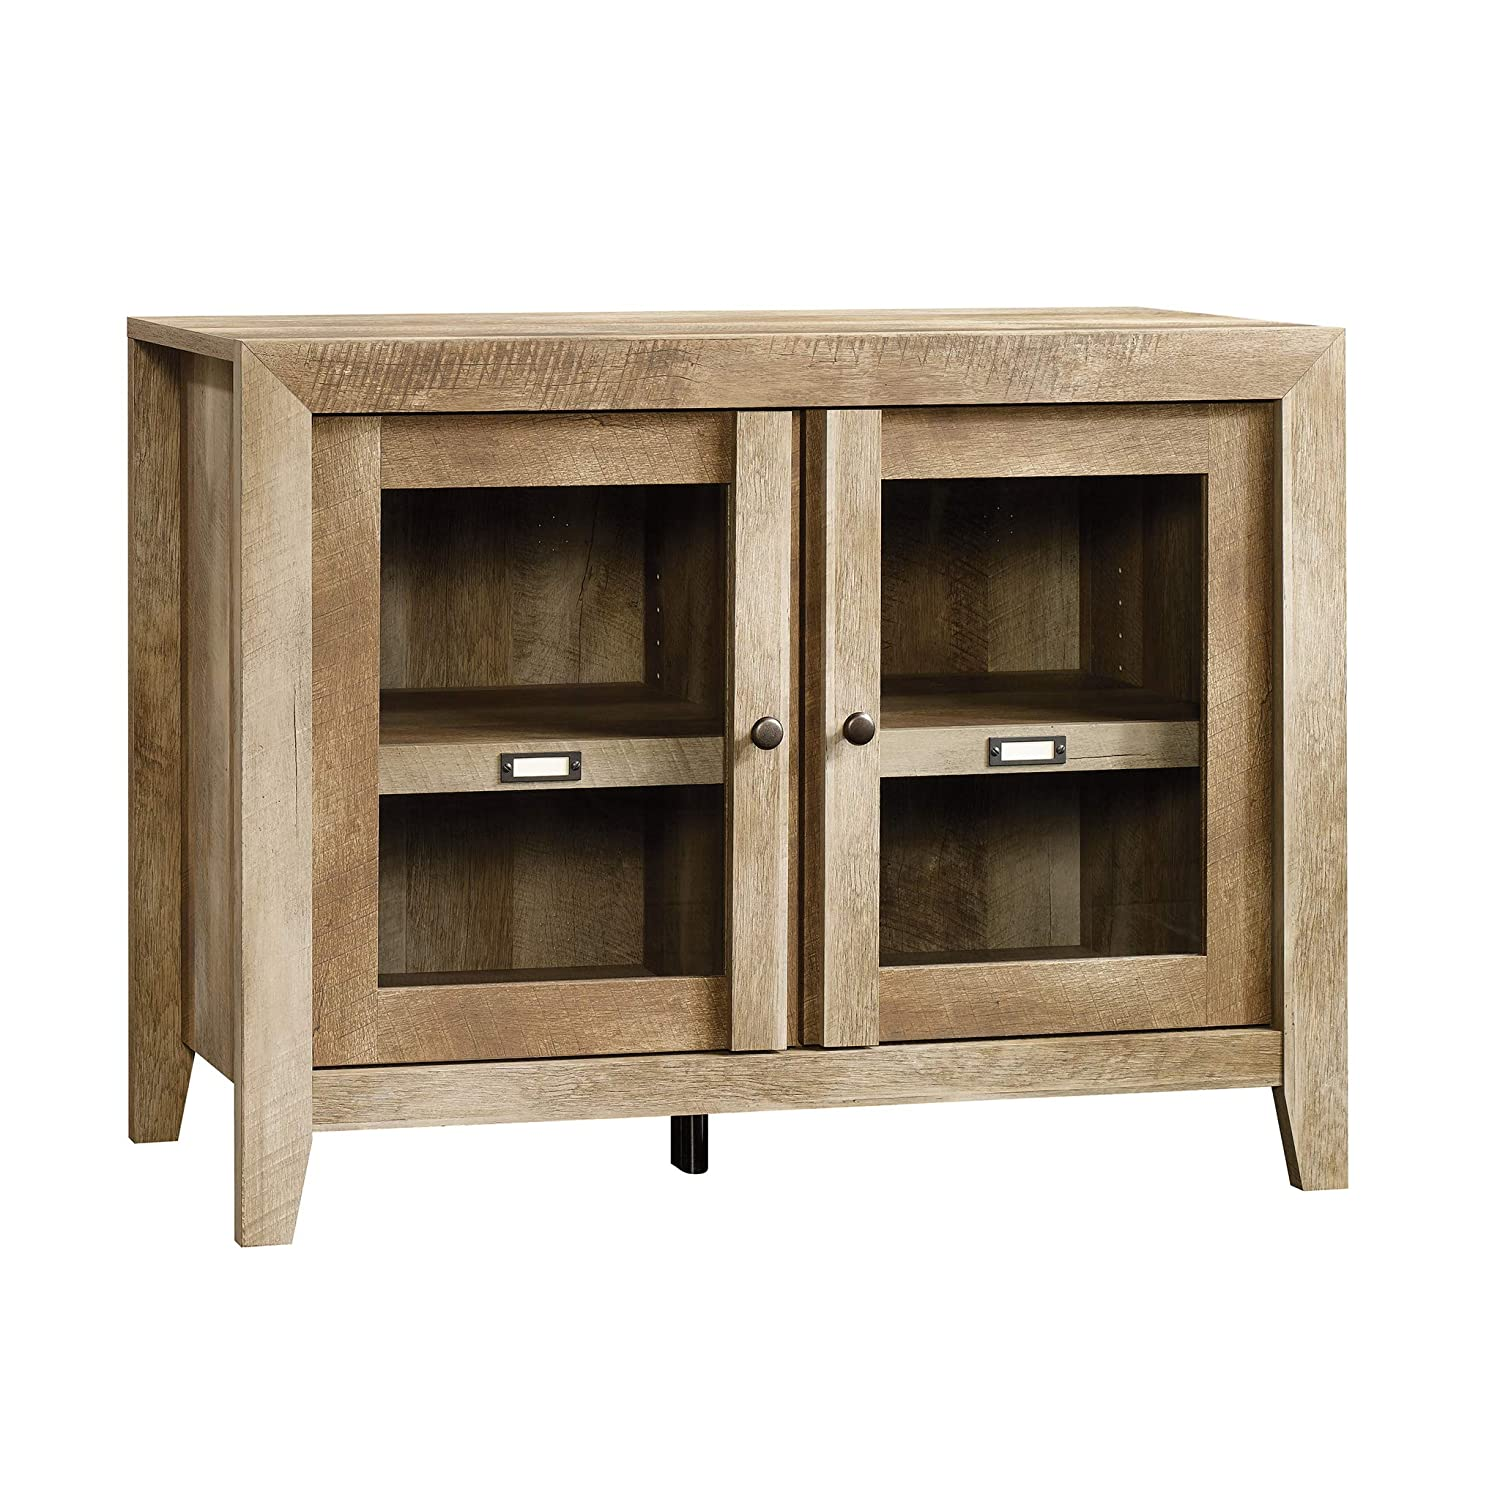 "SauderDakota Pass Display Cabinet, 41.10"" L x 17.52"" W x 30.98 H, Craftsman Oak Finish"